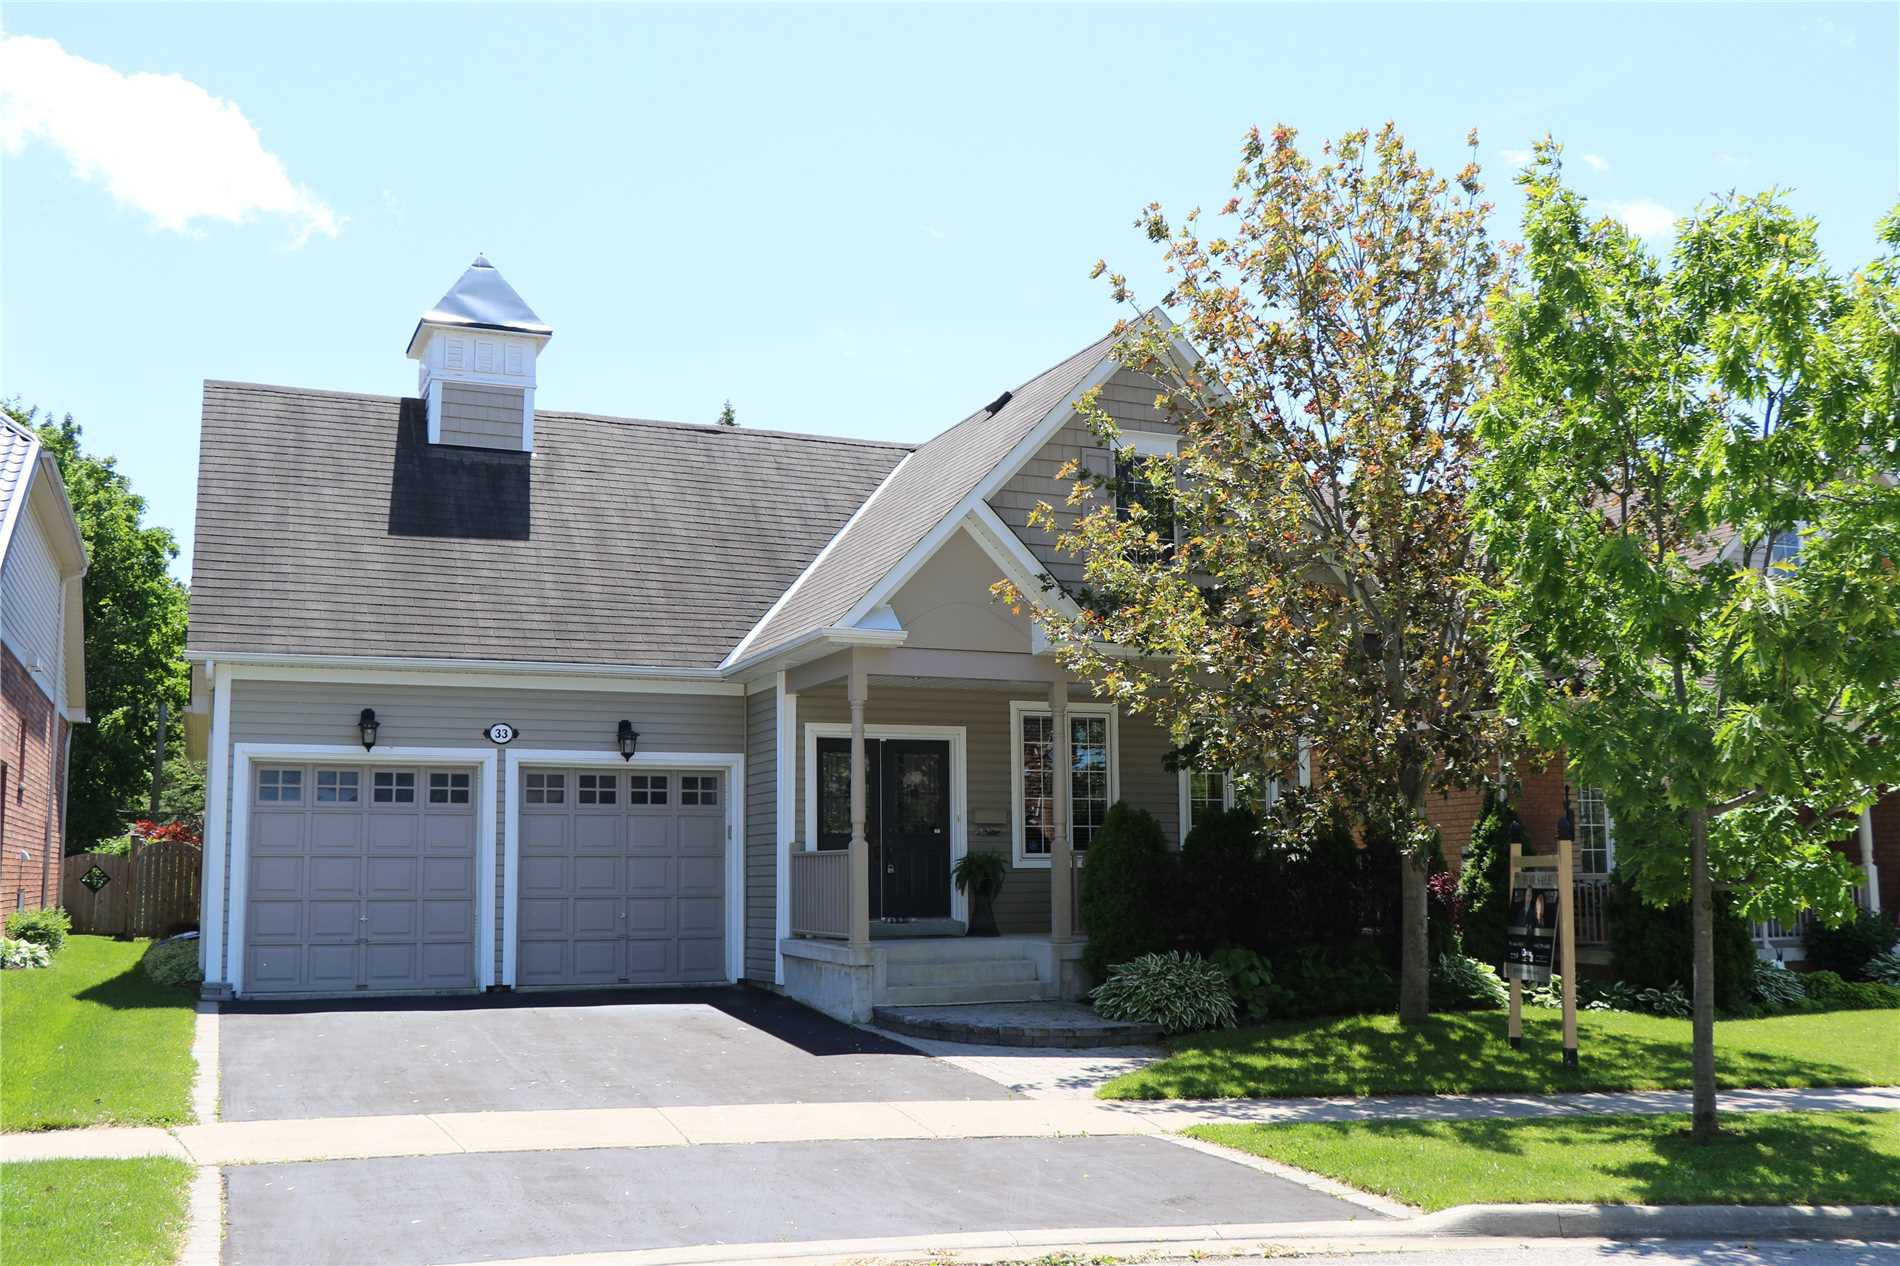 Main Photo: 33 Leithridge Crescent in Whitby: Brooklin House (Bungalow) for sale : MLS®# E4465551